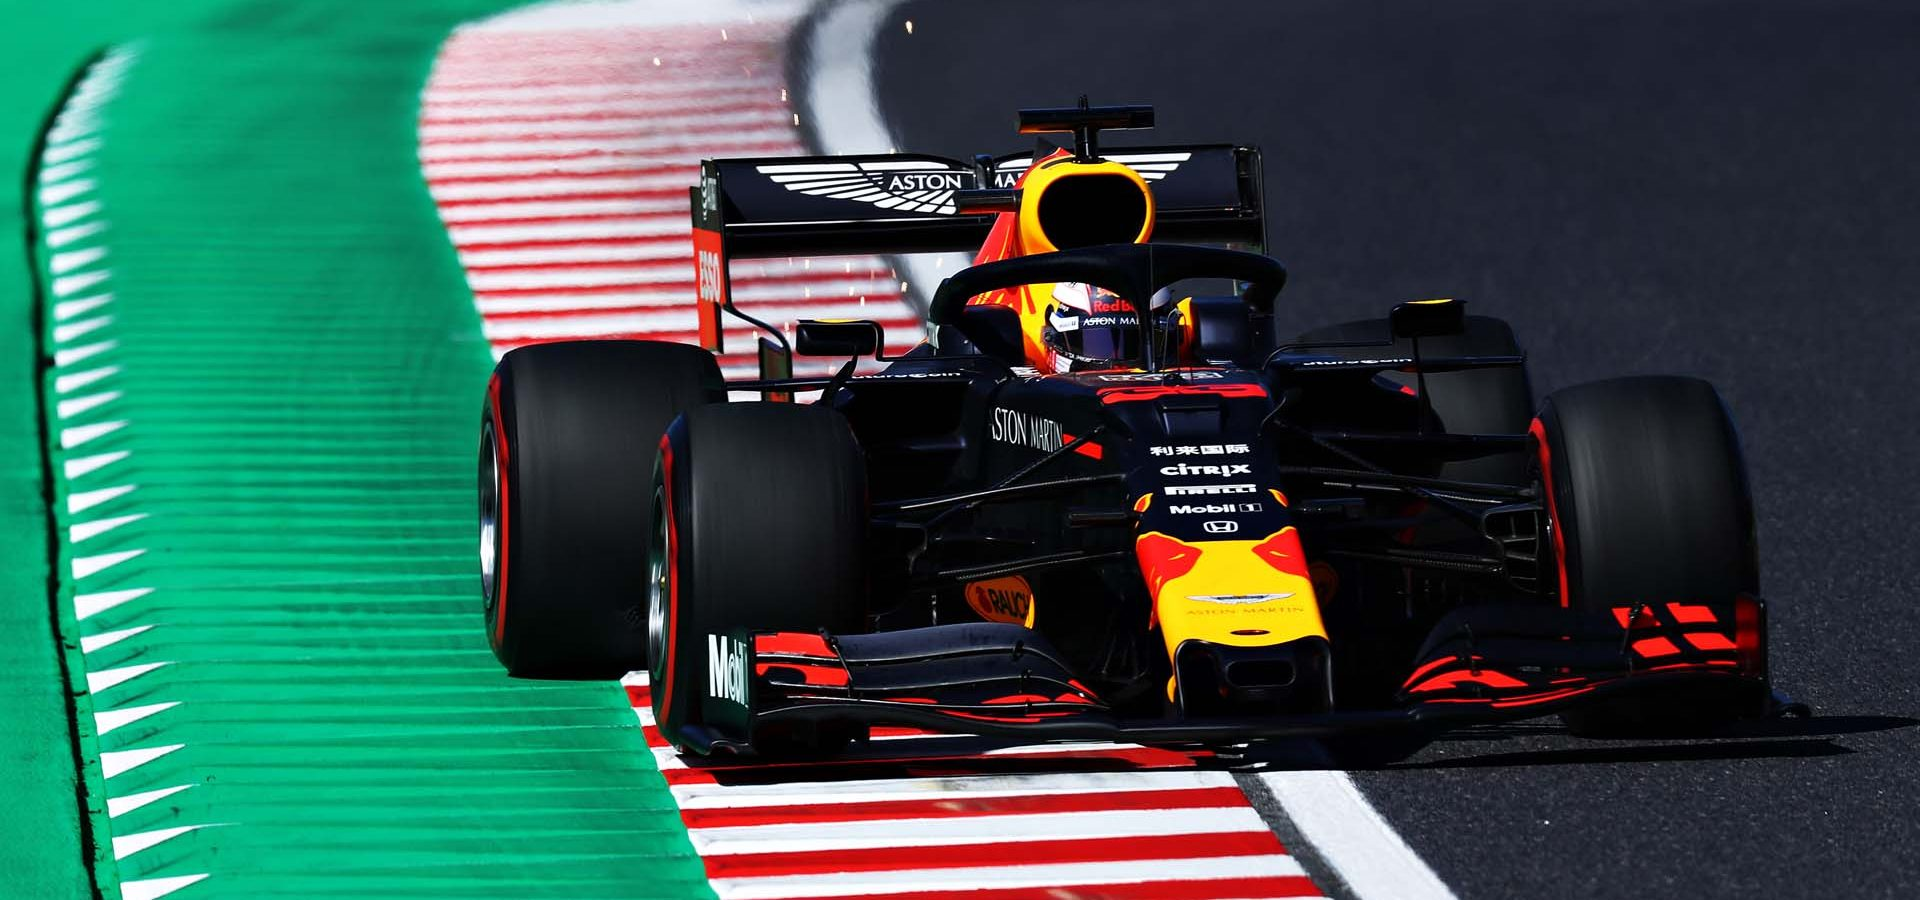 SUZUKA, JAPAN - OCTOBER 13: Max Verstappen of the Netherlands driving the (33) Aston Martin Red Bull Racing RB15 on track during qualifying for the F1 Grand Prix of Japan at Suzuka Circuit on October 13, 2019 in Suzuka, Japan. (Photo by Mark Thompson/Getty Images) // Getty Images / Red Bull Content Pool  // AP-21UXYQZV91W11 // Usage for editorial use only //